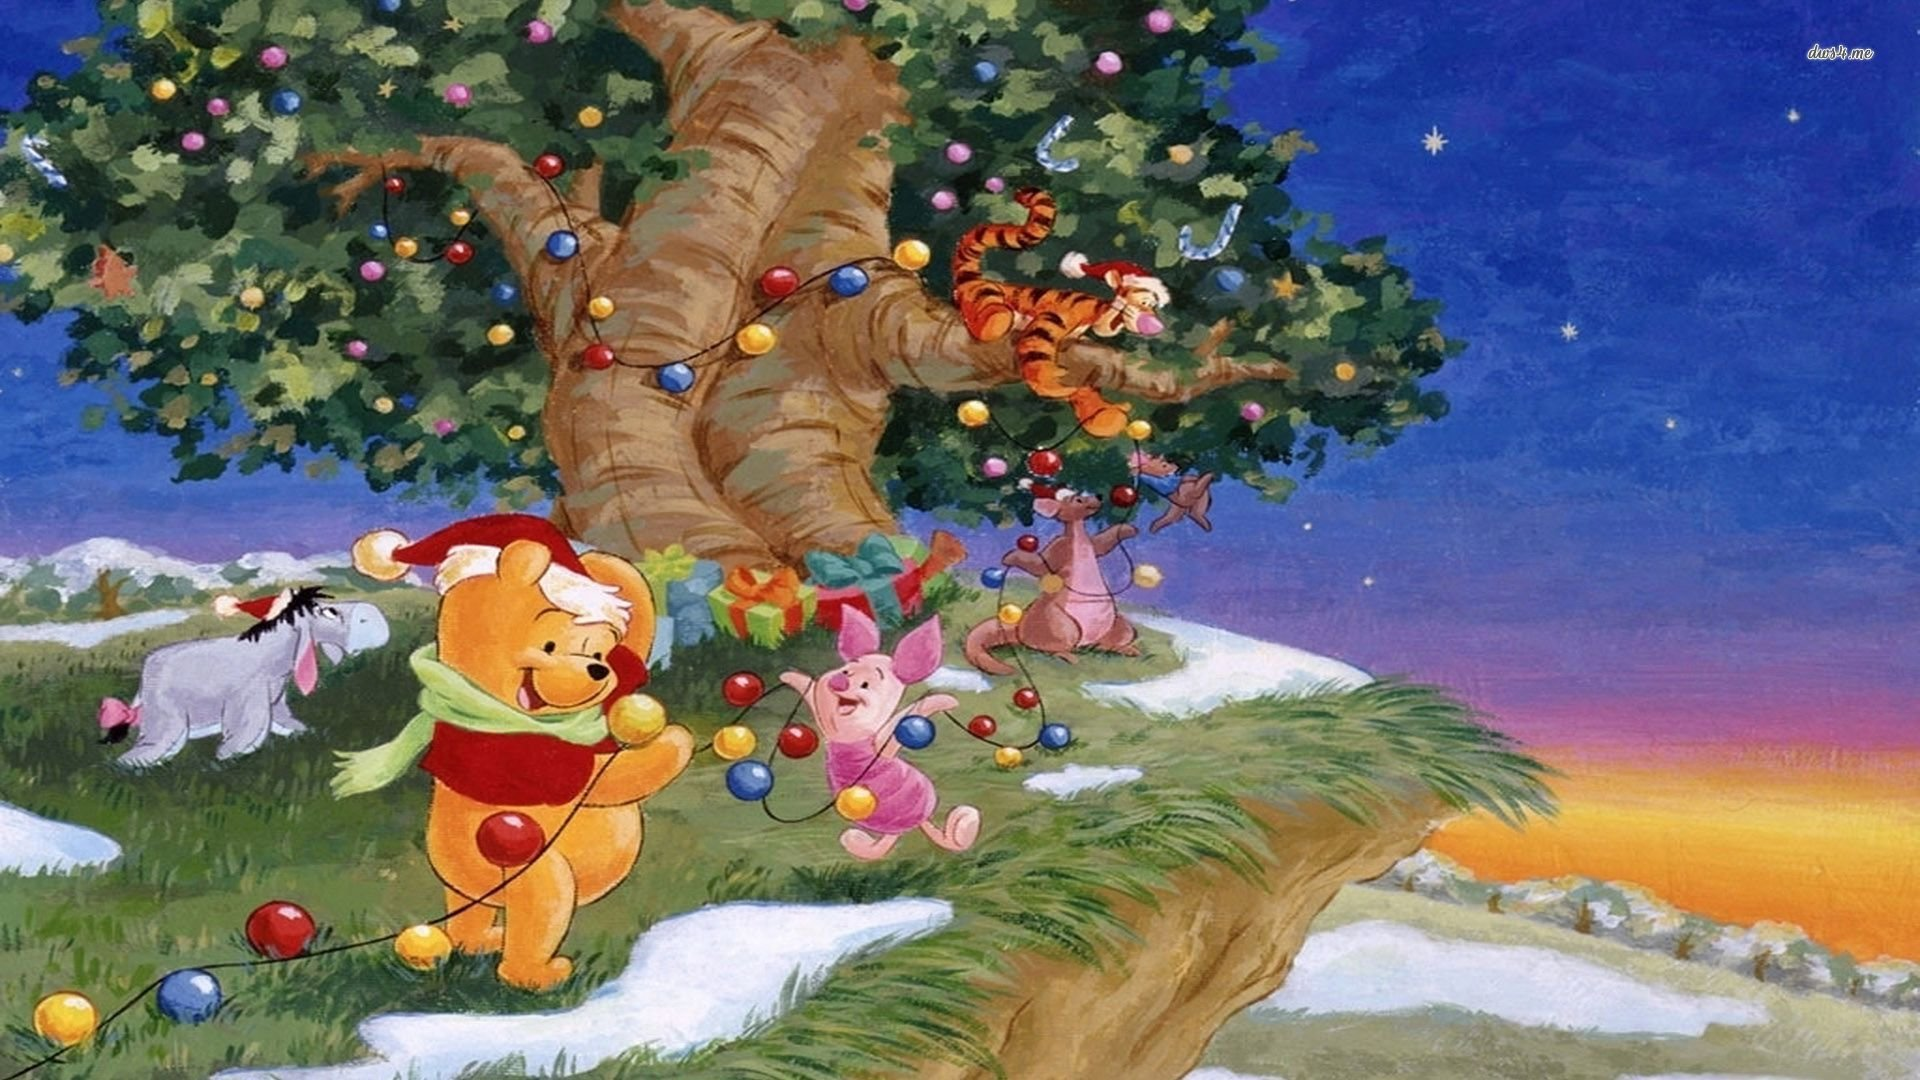 Winnie The Pooh Wallpapers Hd For Desktop Backgrounds